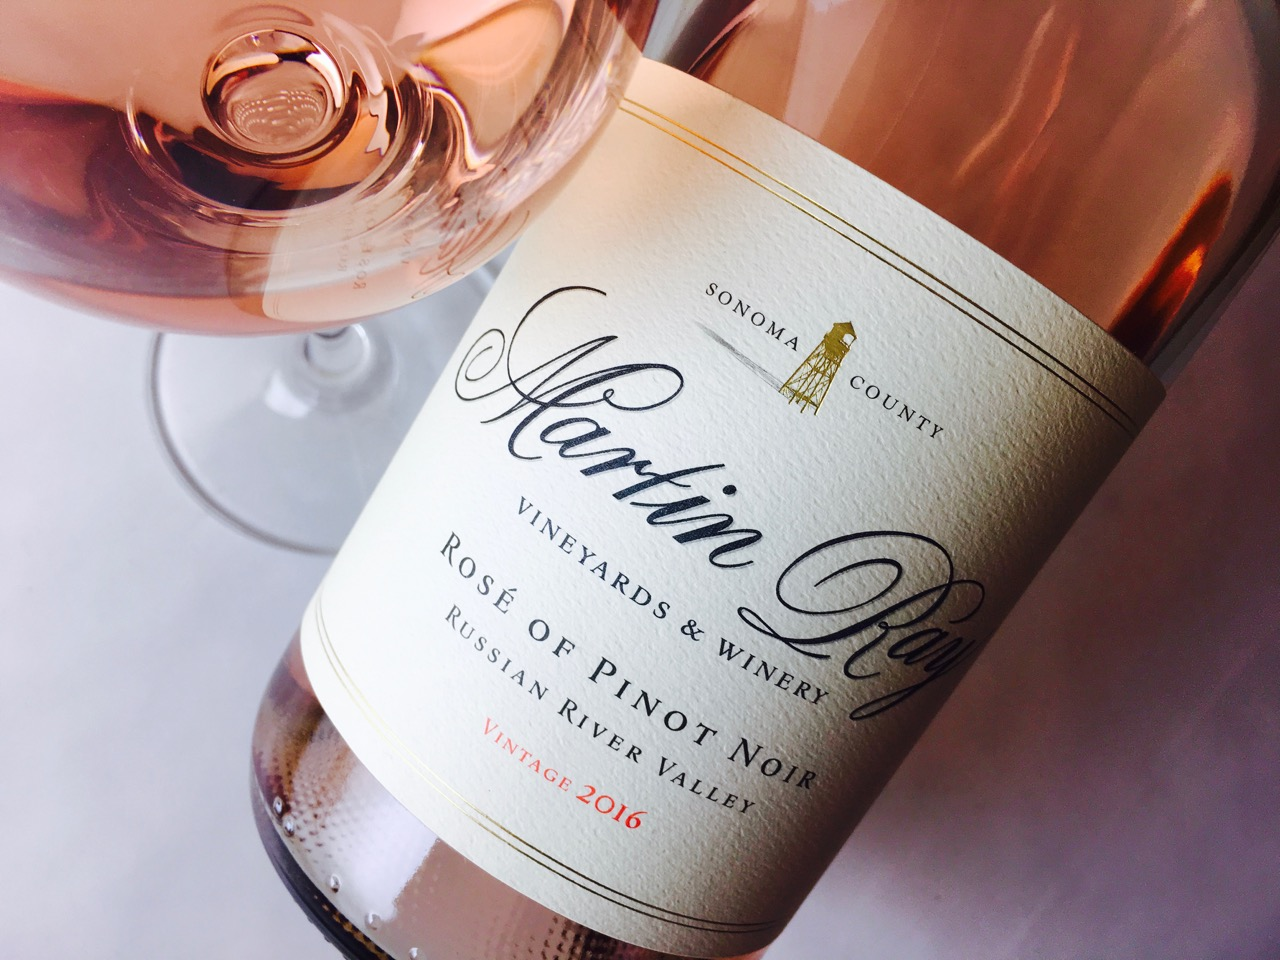 2016 Martin Ray Pinot Noir Rosé Russian River Valley